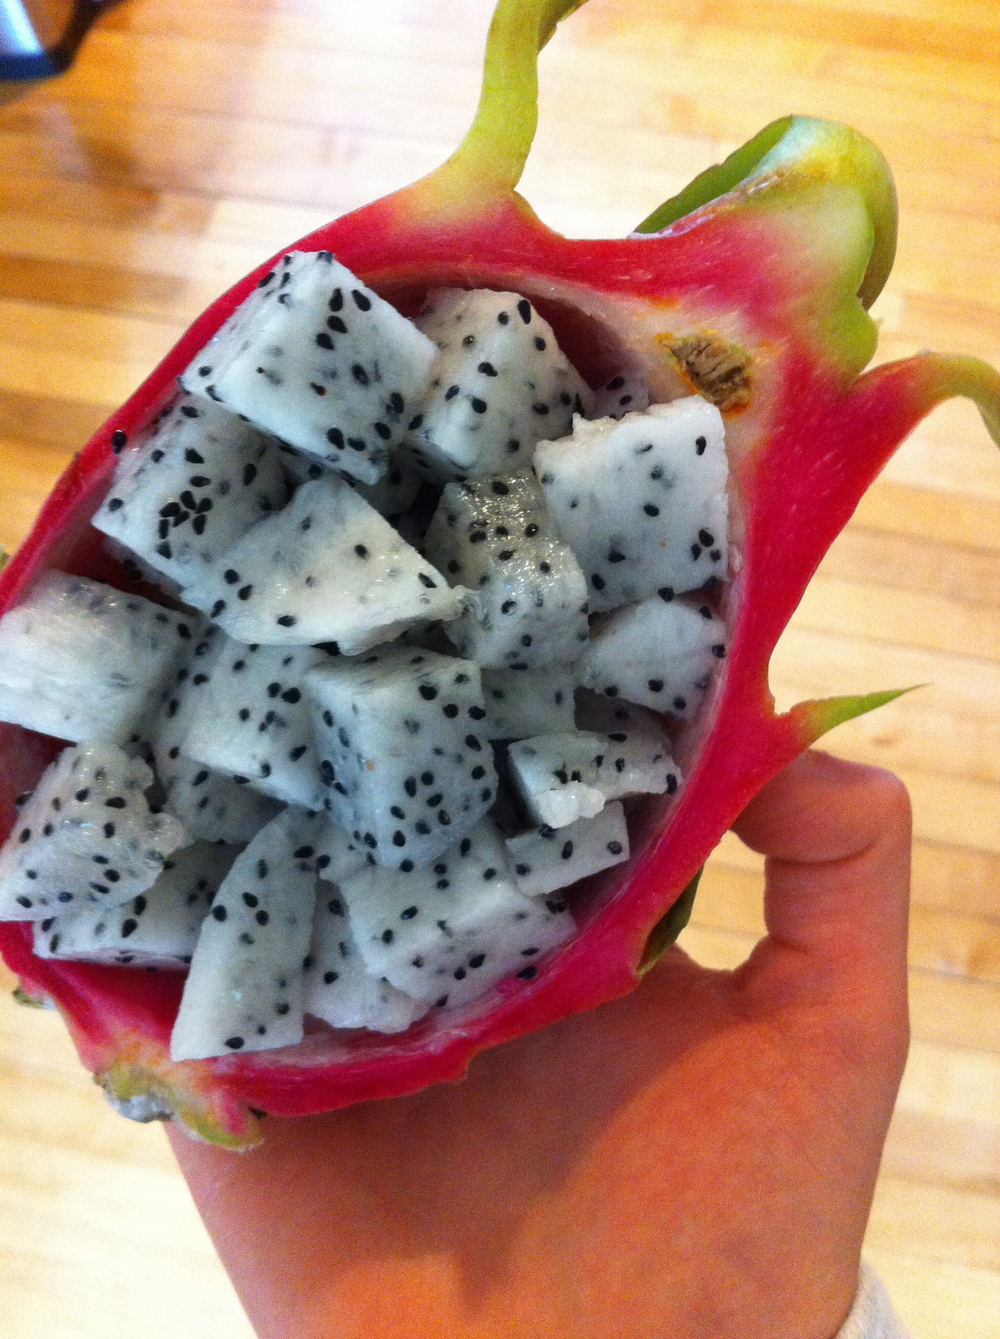 Finally got to try dragonfruit. YUM. It was definitely unique...reminiscent of kiwi but much more mild and refreshing. Especially good with yogurt.